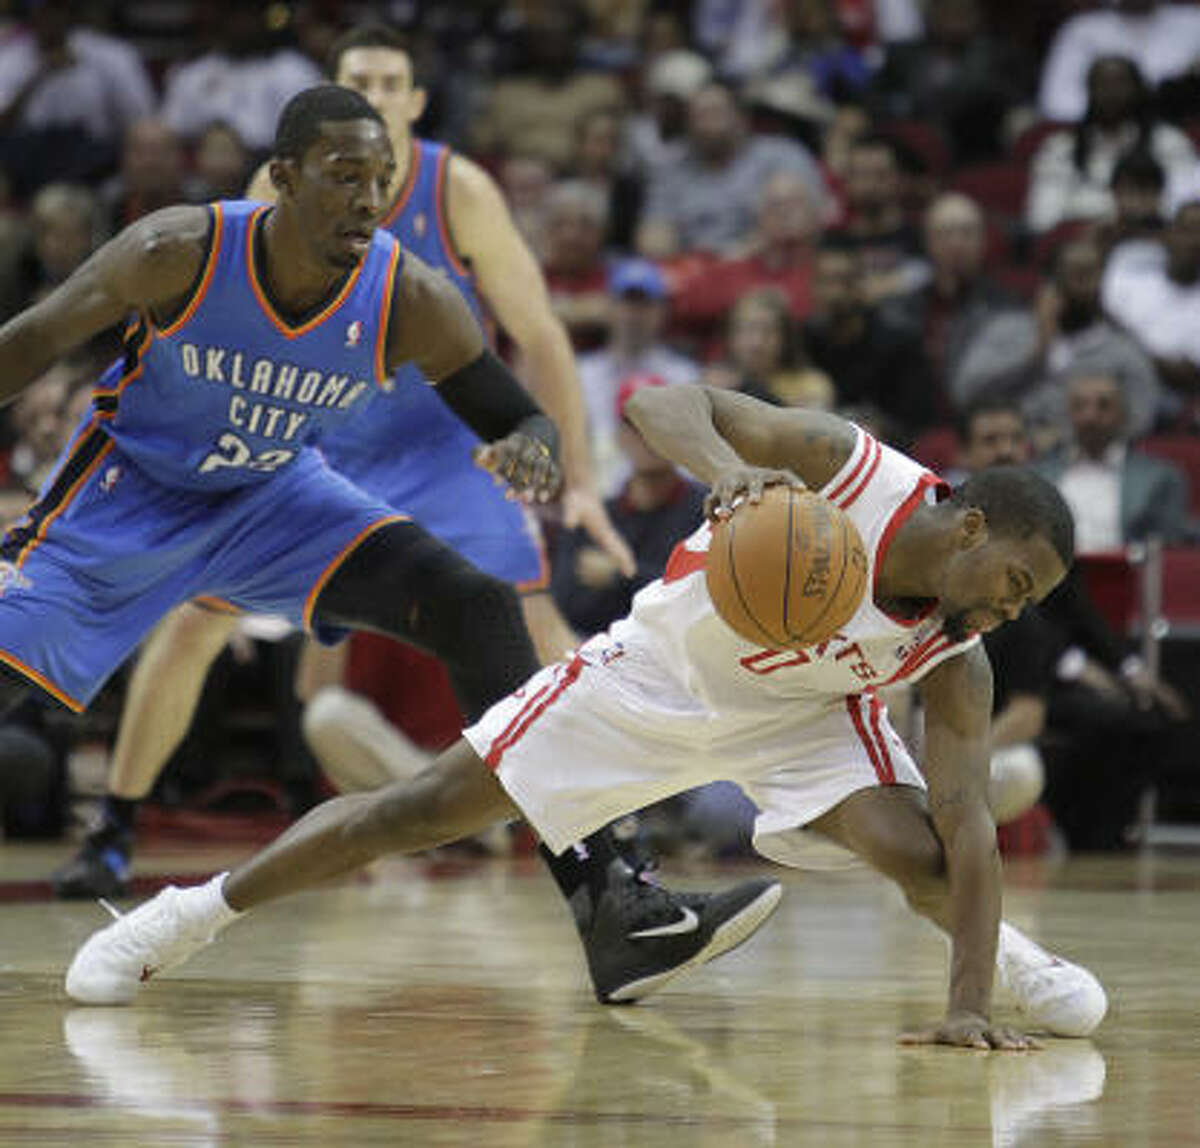 Jan. 12: Thunder 118, Rockets 112 Rockets guard Aaron Brooks stumbles with the ball in midcourt as Oklahoma City's Jeff Green looks on during the second half. The Rockets rallied late but were unable to complete a comeback.